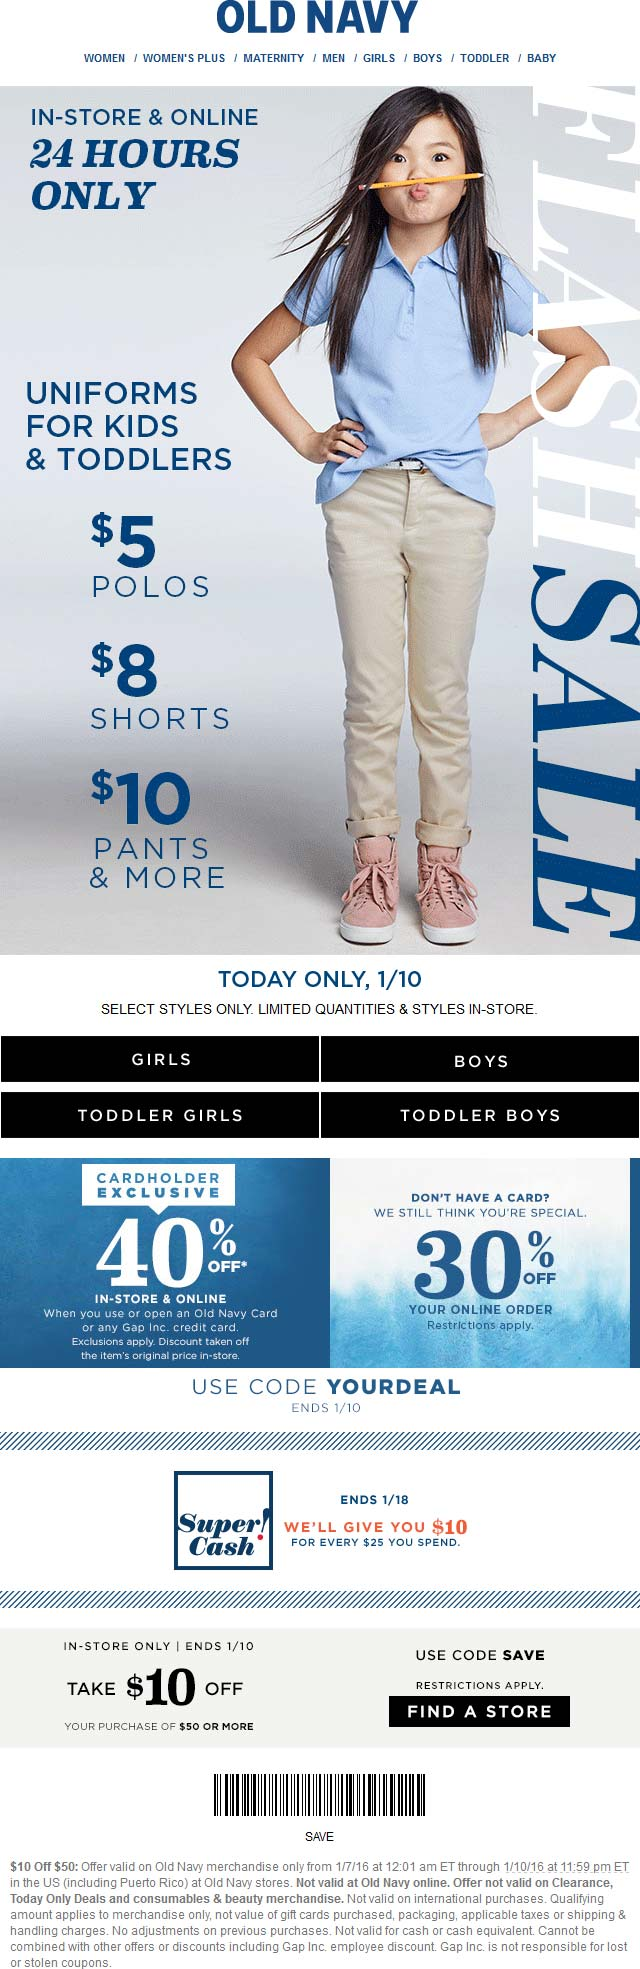 Old Navy Coupon May 2017 $10 off $50 today at Old Navy, or 30% online via promo code SAVE